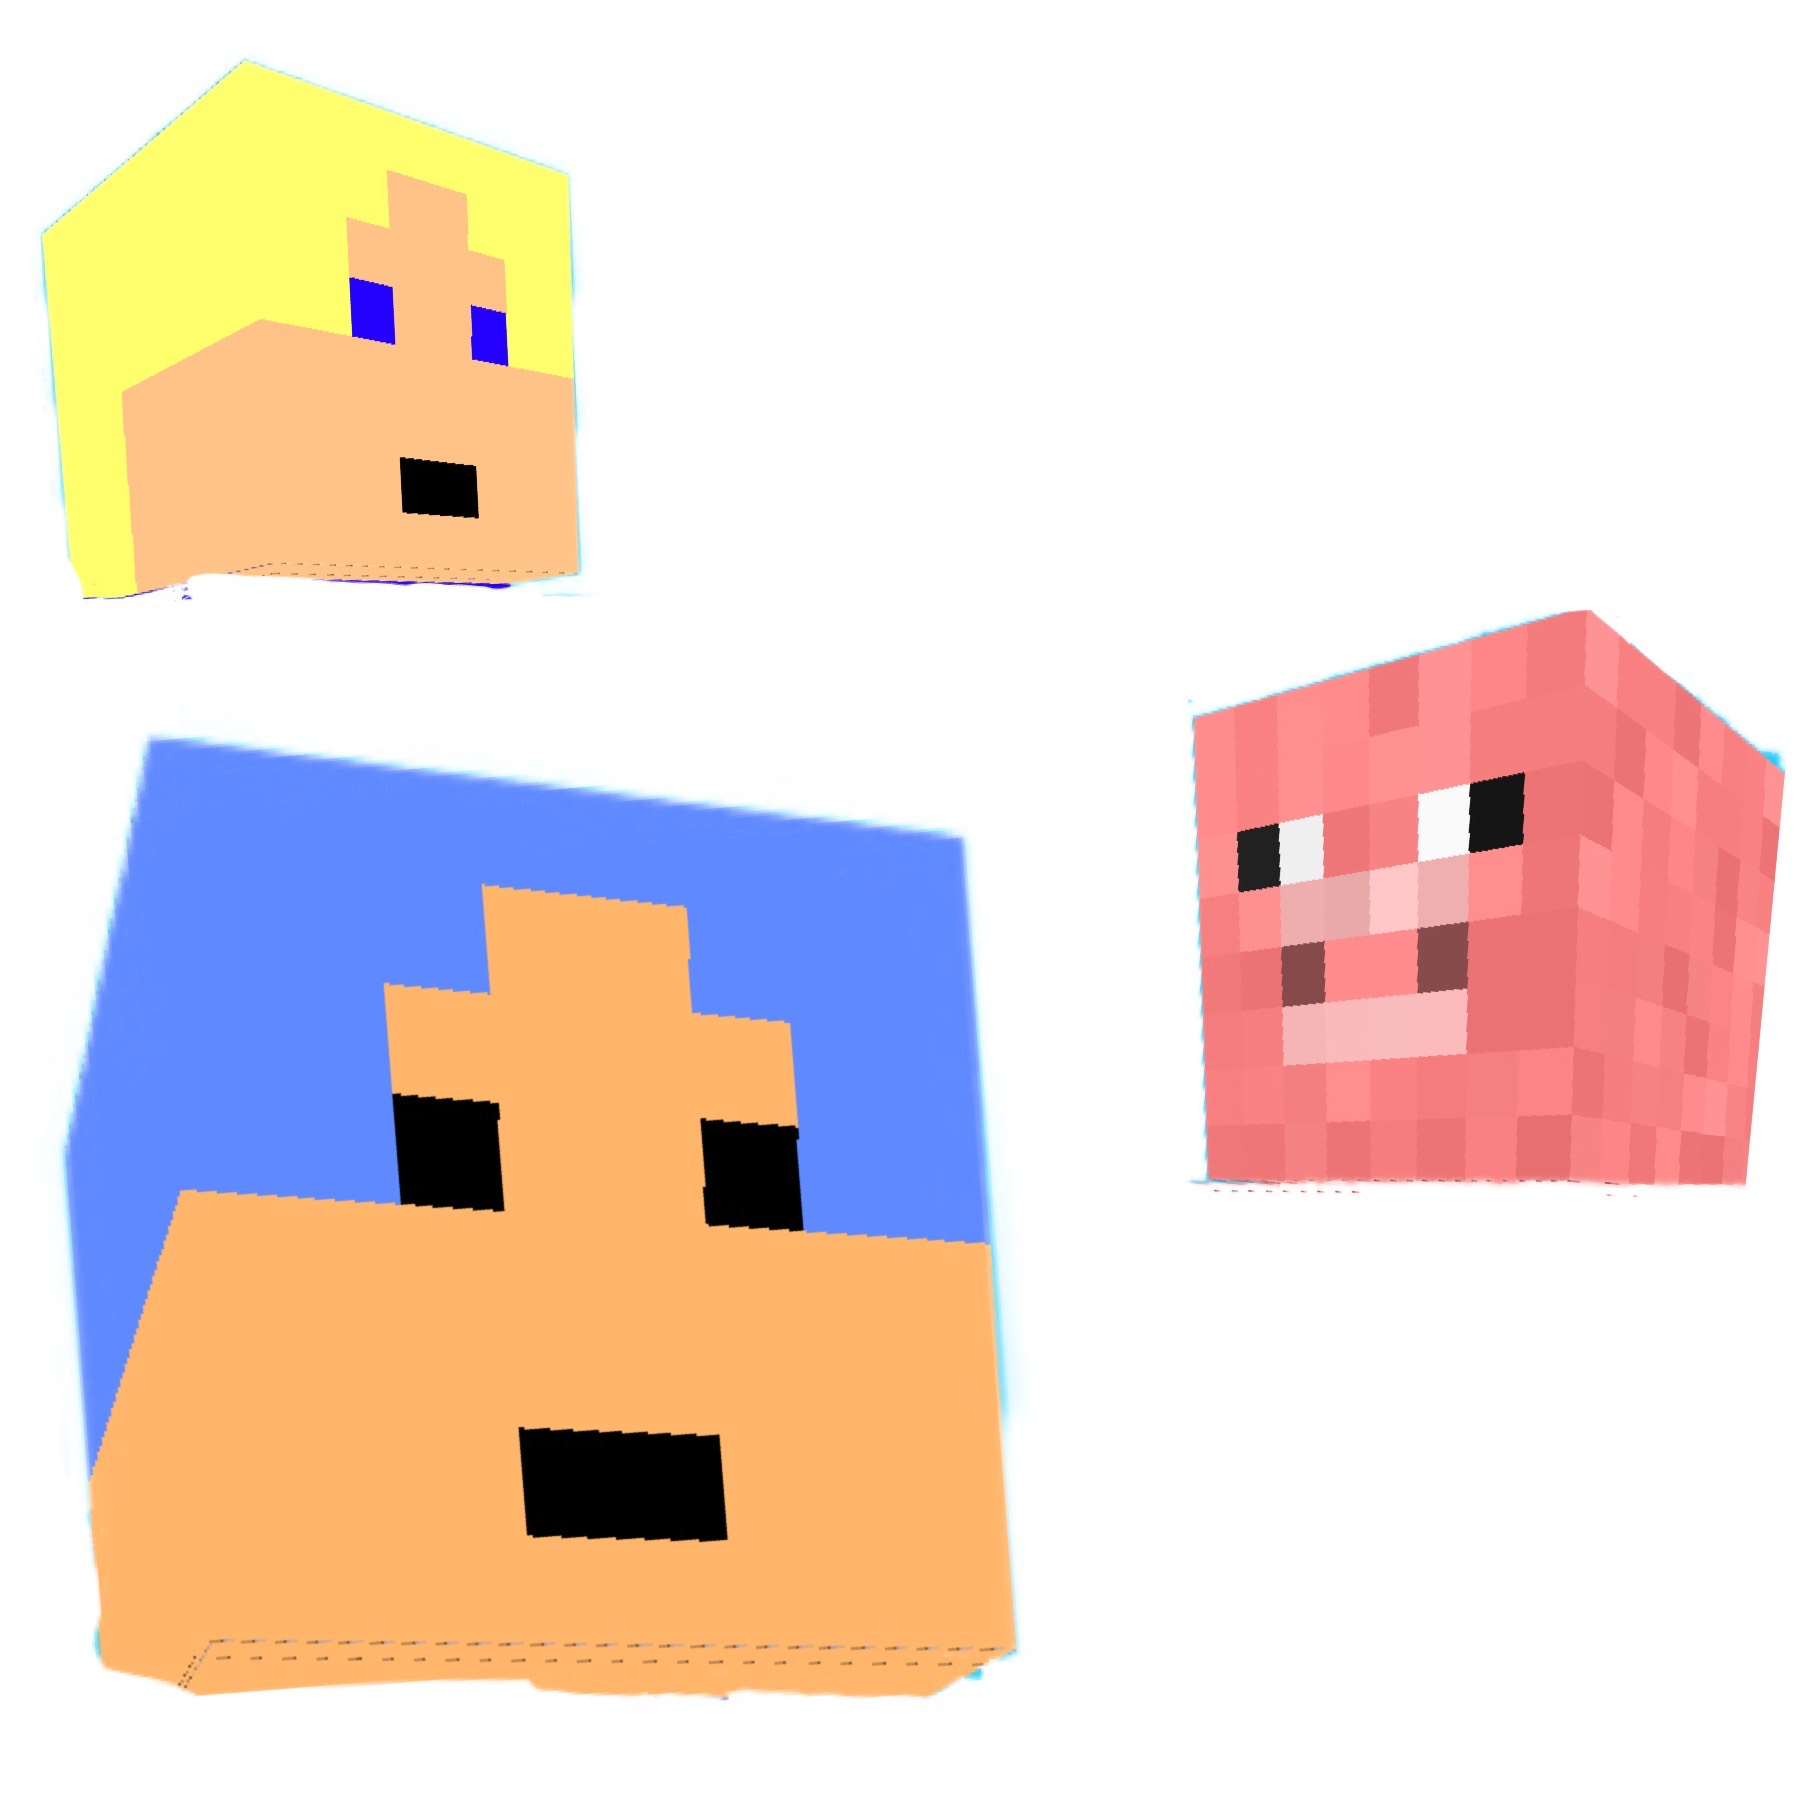 Hi guys! Don't forget to friend me on Minecraft so we can play and create cool things together! My gamertag is: RockJoker120099. Thx!